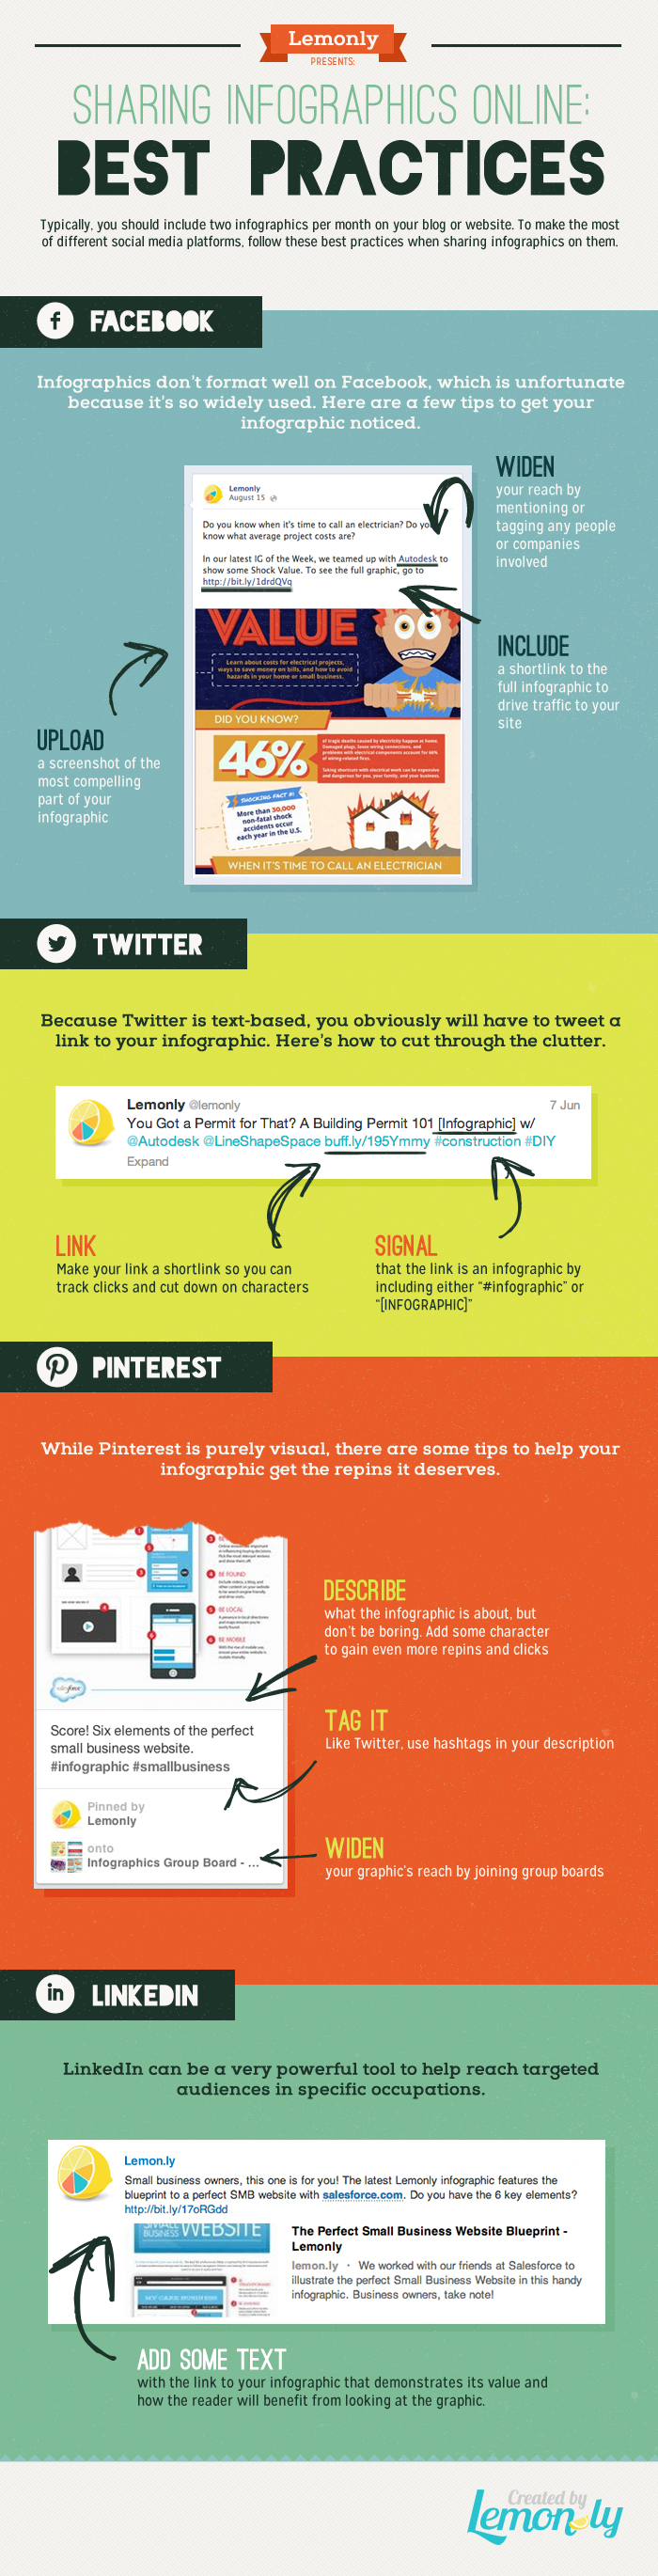 tips to ace your phone interview infographic best infographics how to share infographics online infographic